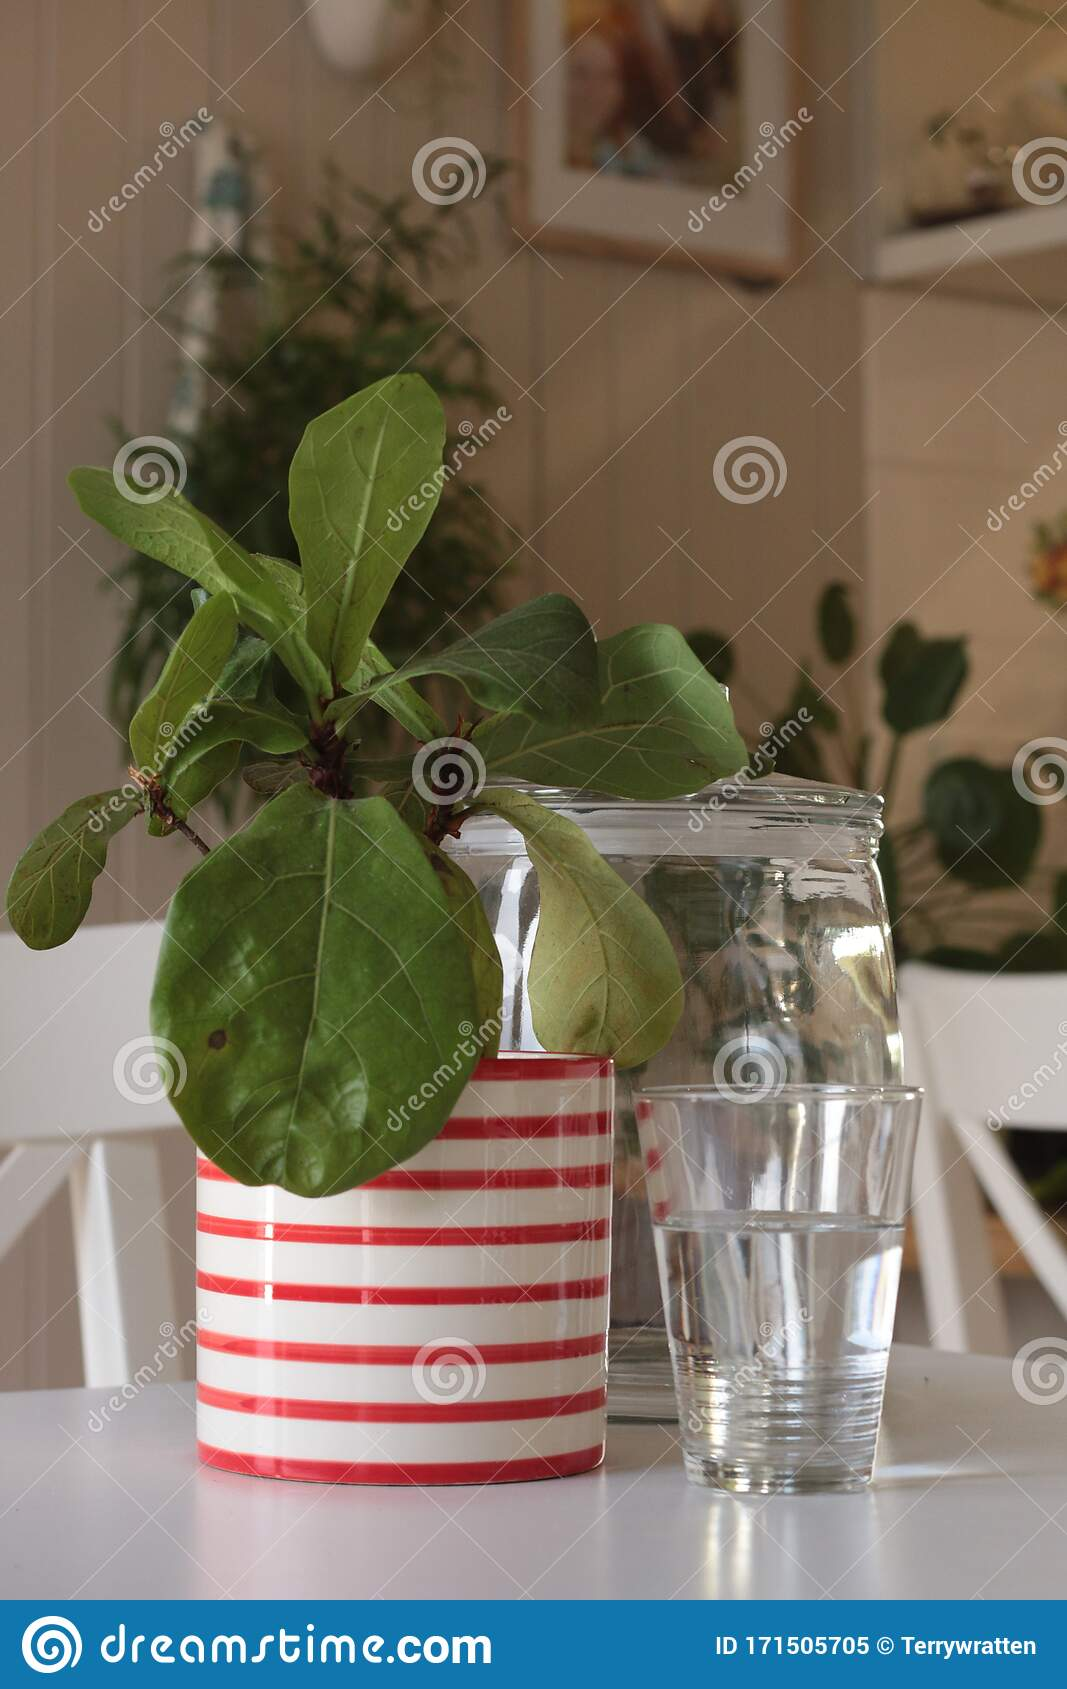 Large Leafed Refreshing Indoor Plant Greenery In A Decorative Ceramic Pot Flourishing In A Well Lit Modern Home Stock Image Image Of Evergreen Beautiful 171505705